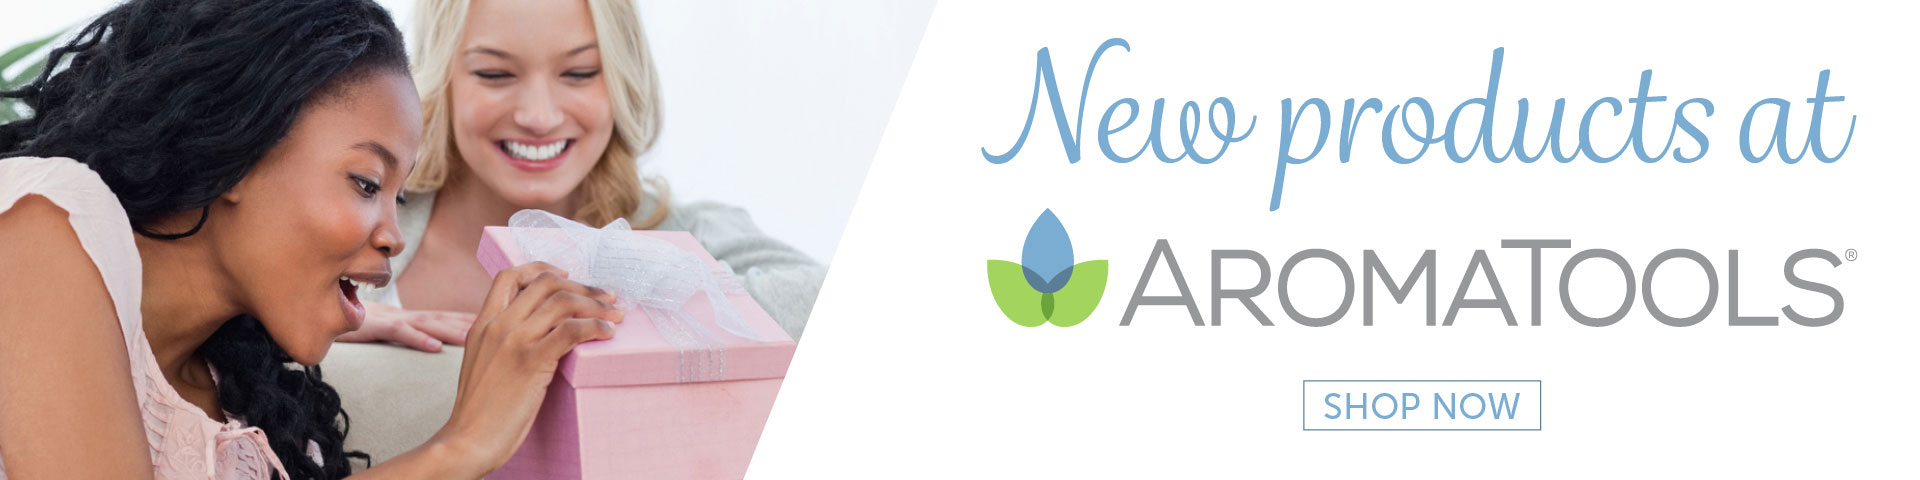 New Products at AromaTools!